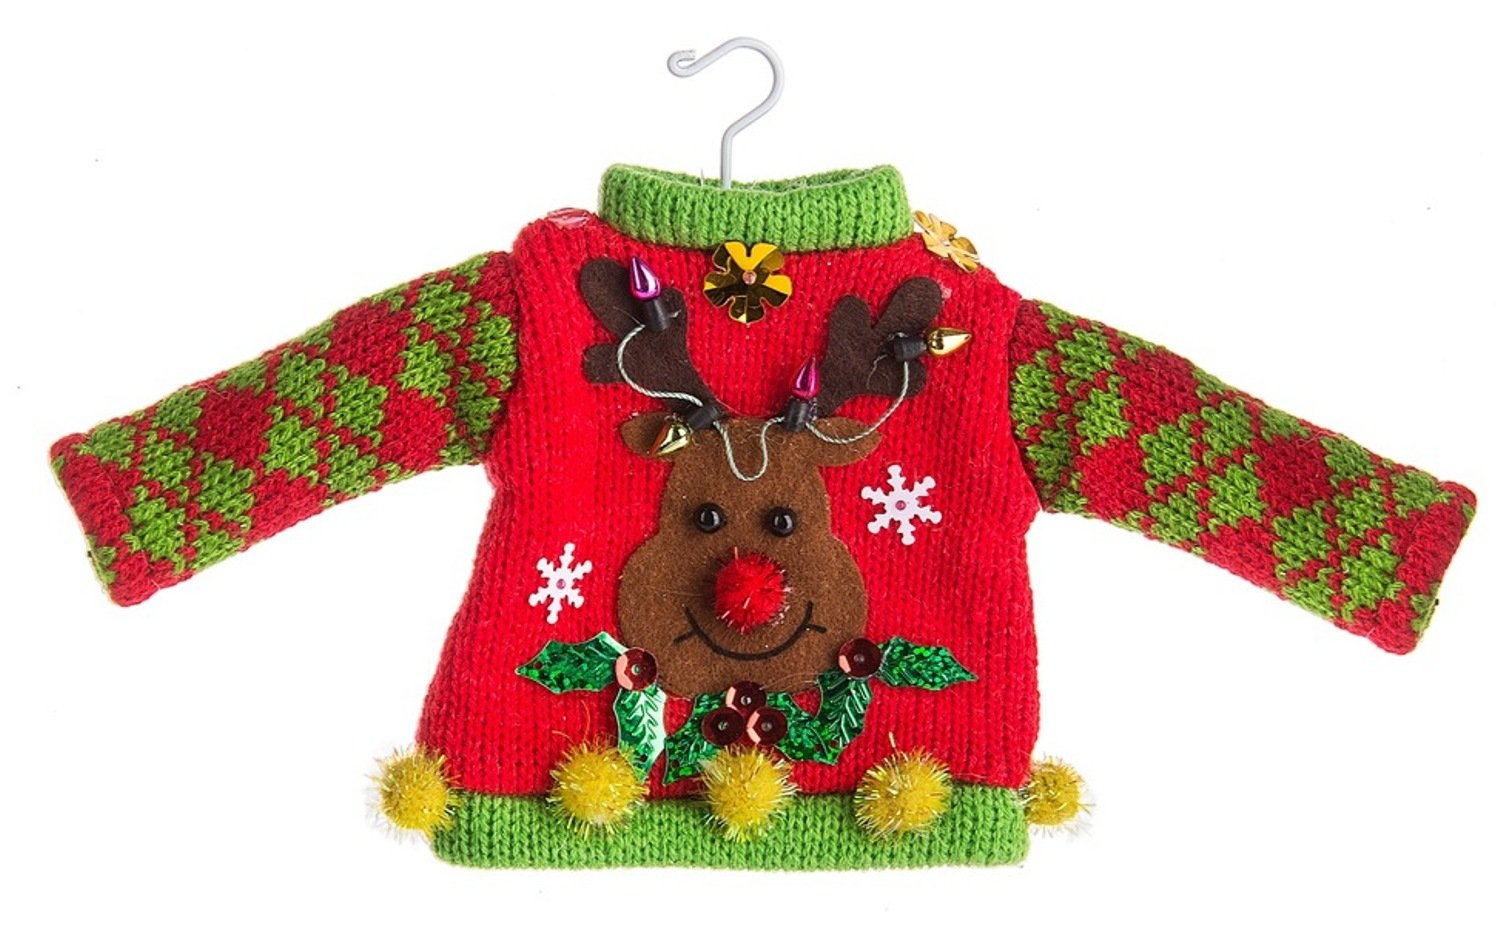 Midwest-CBK Reindeer Ugly Tacky Sweater Christmas Ornament